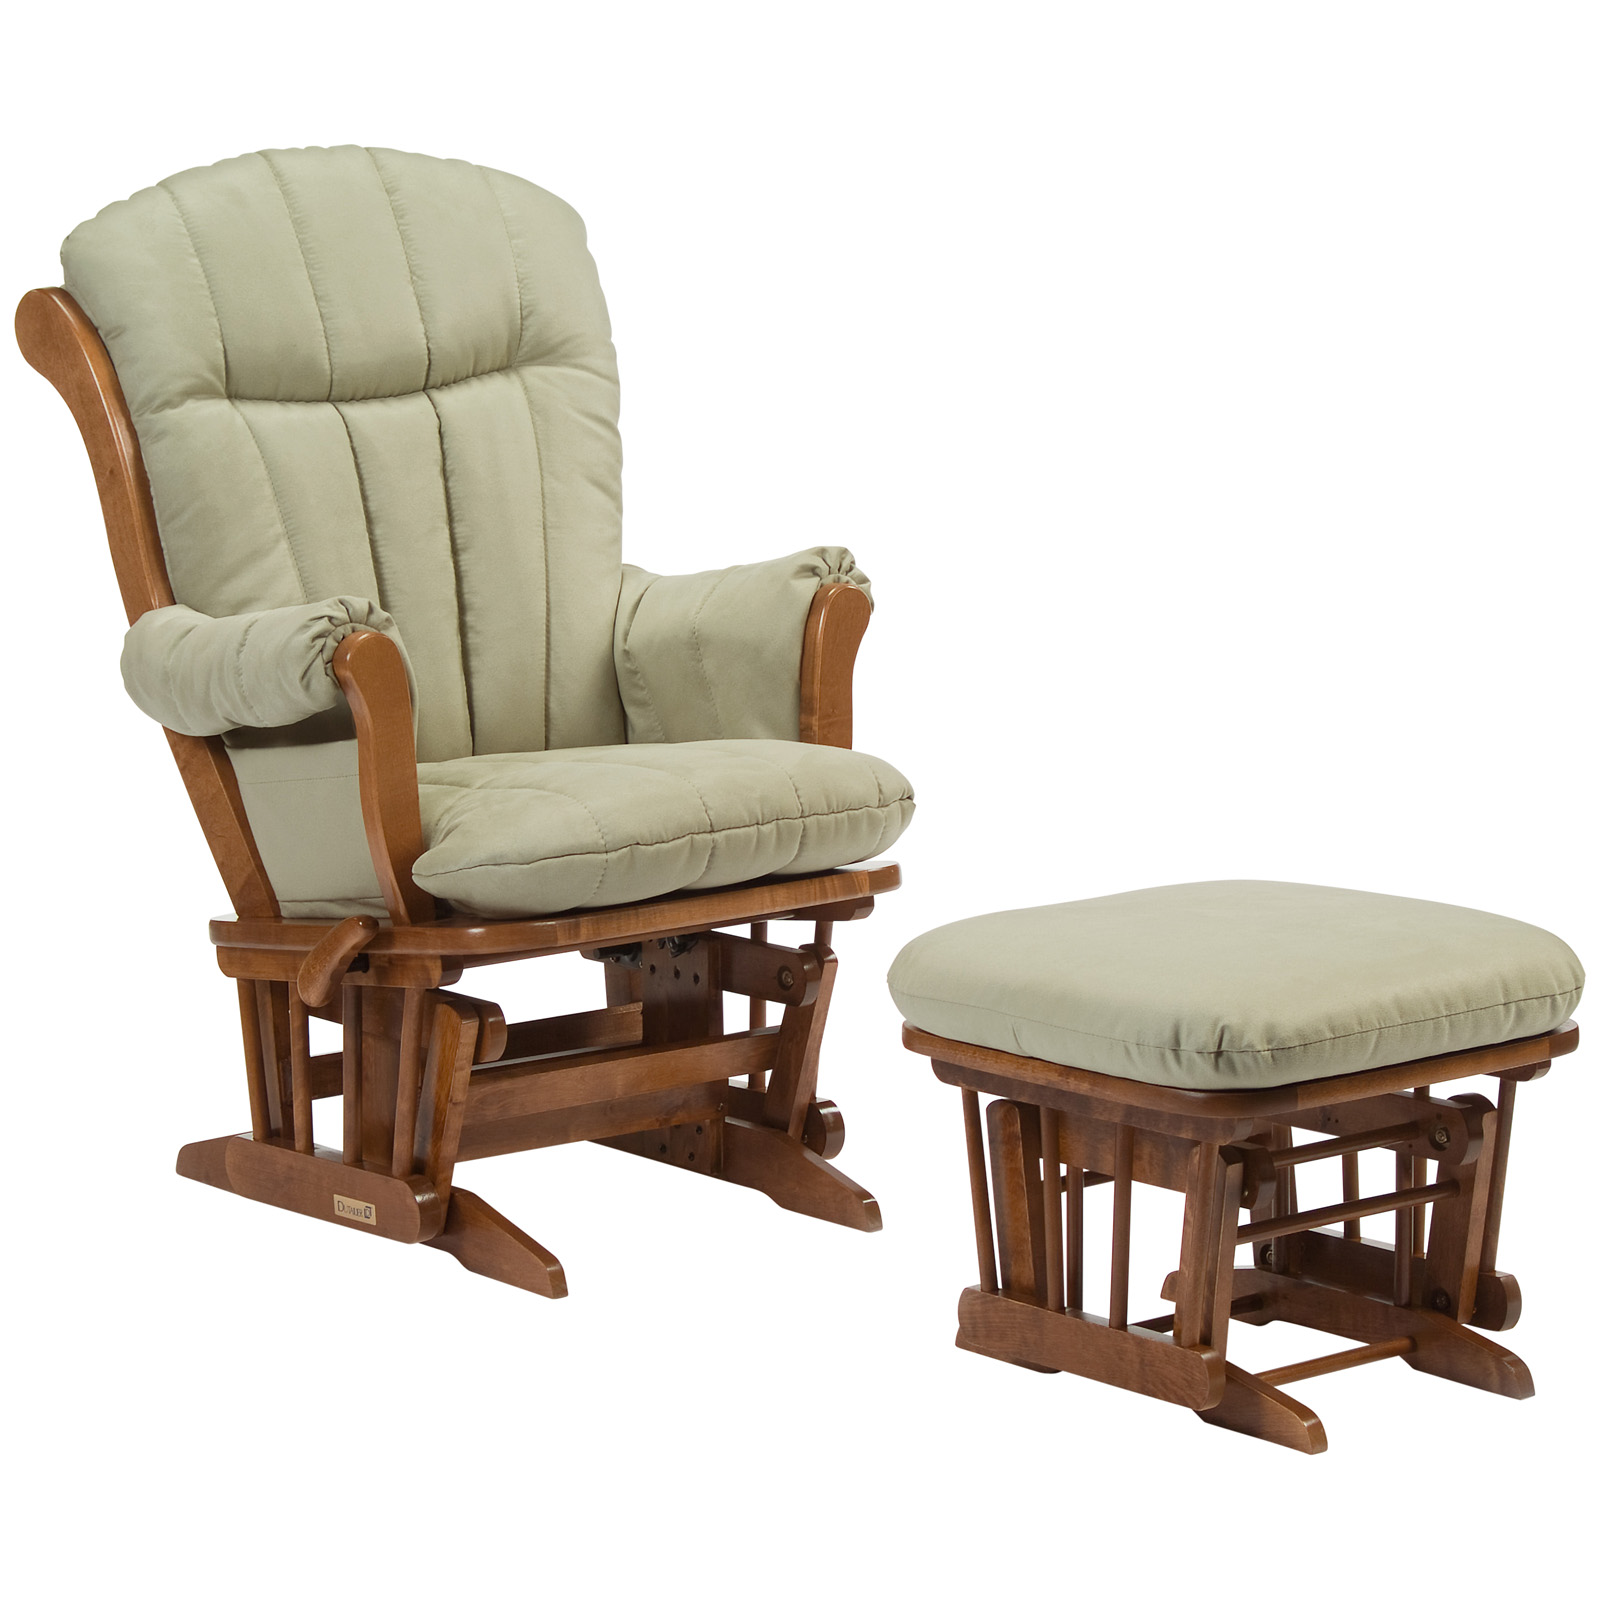 Dutailier rocking chair babies r us almirah for Chaise dutailier